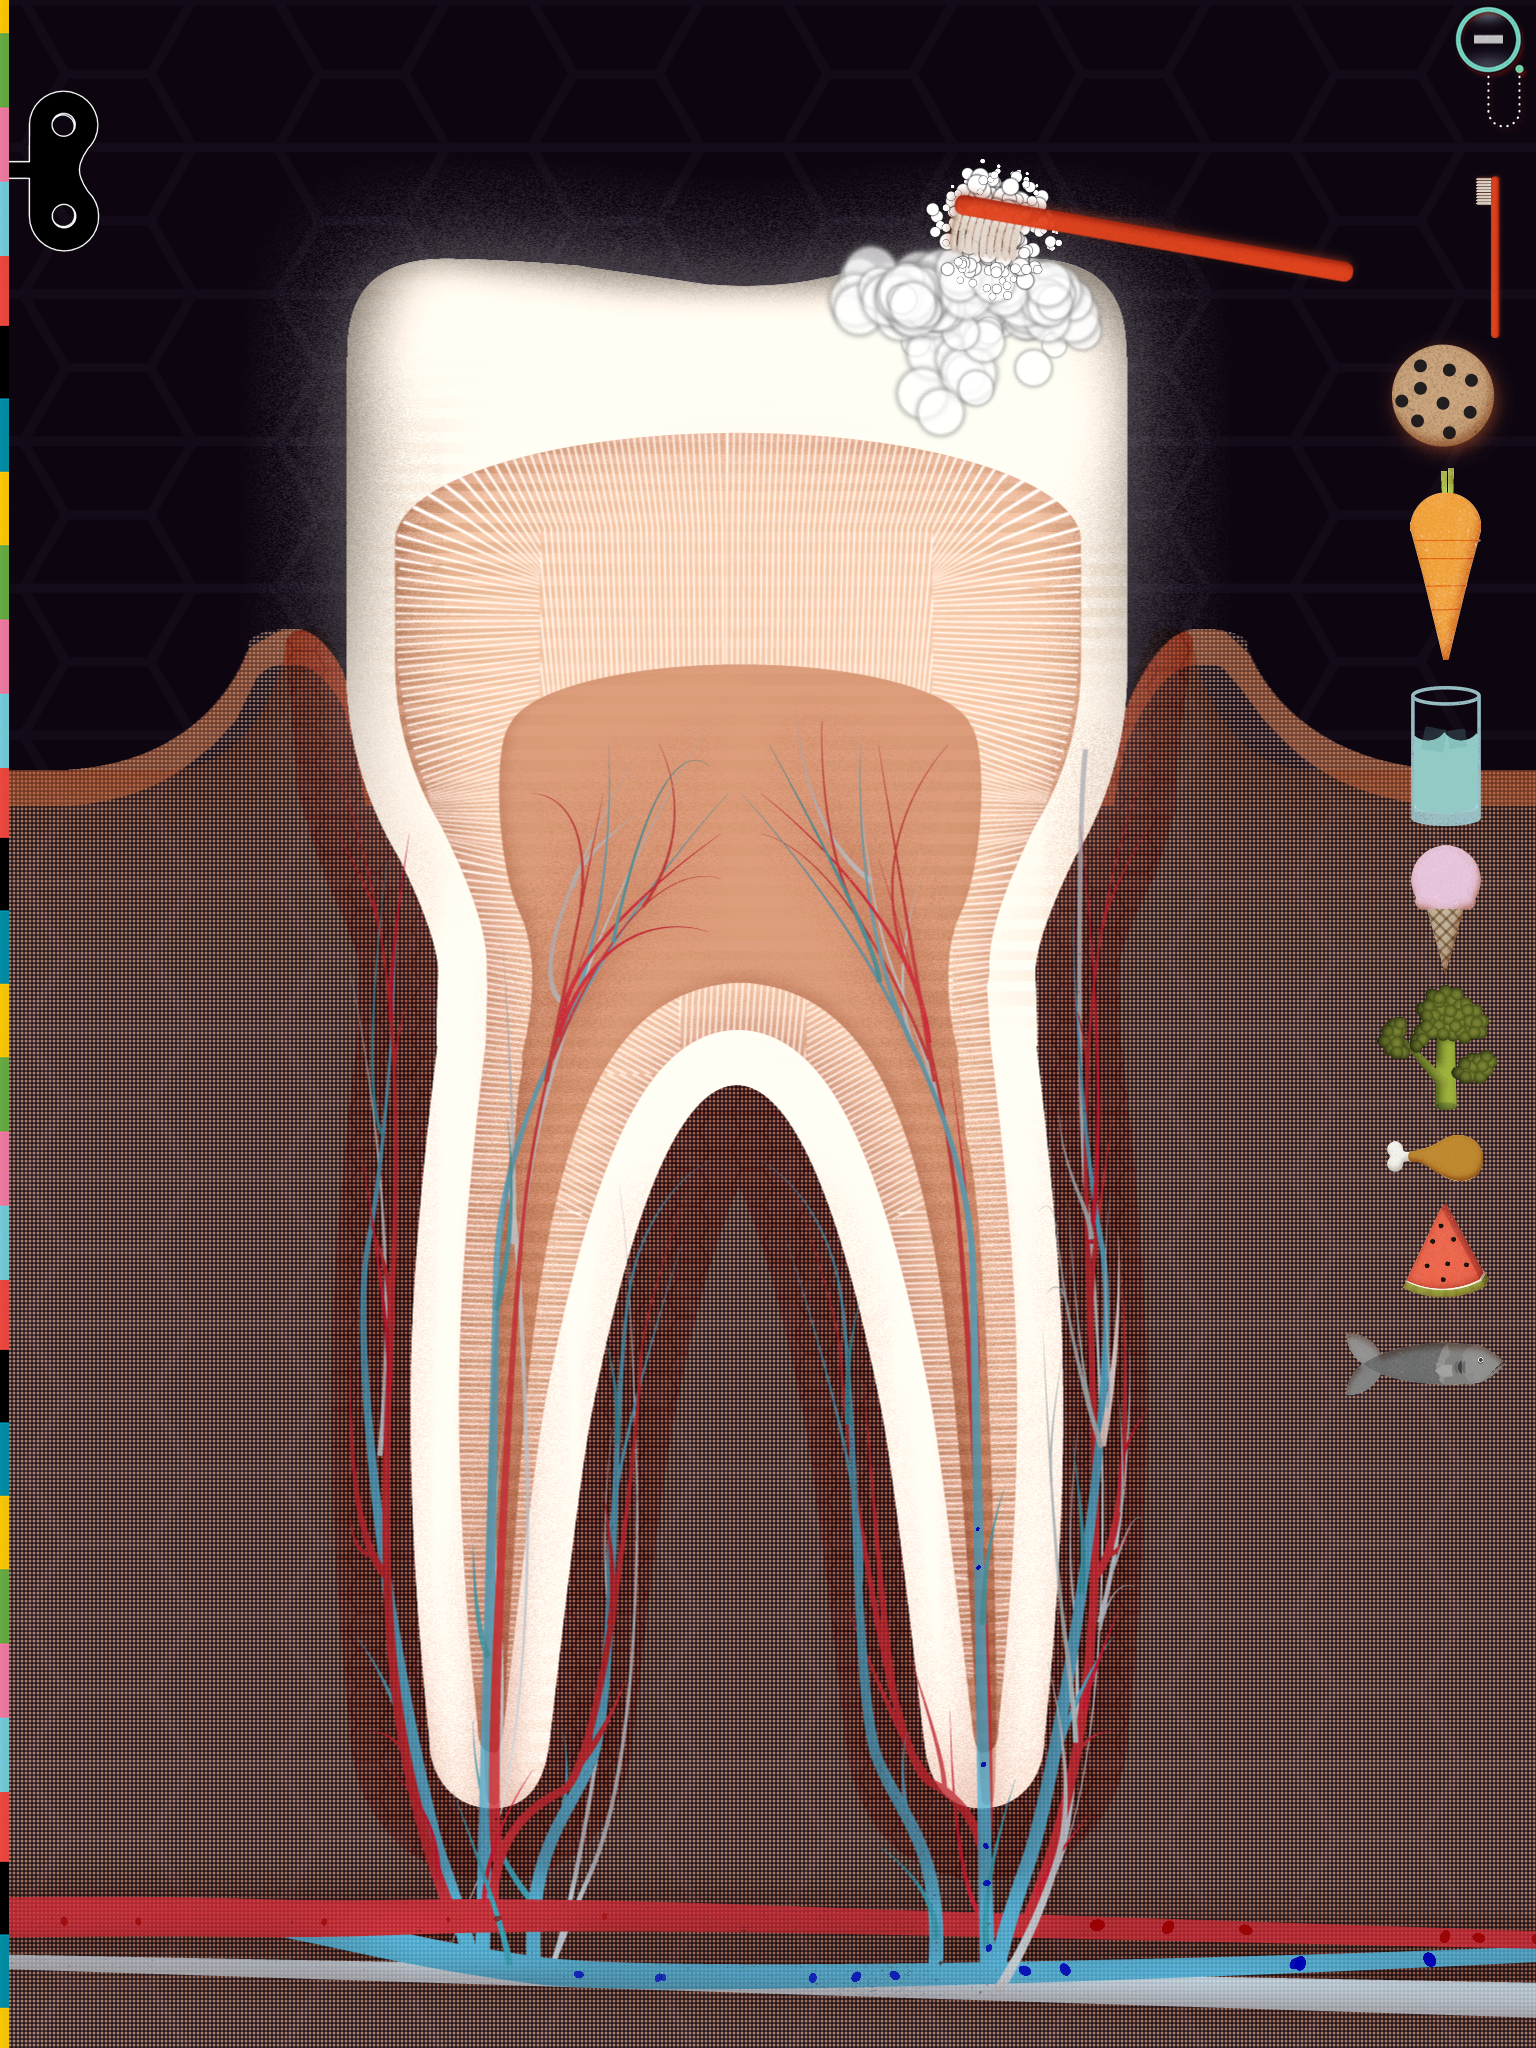 Learn about anatomy from the inside out: http://tinybop.com/apps/the ...